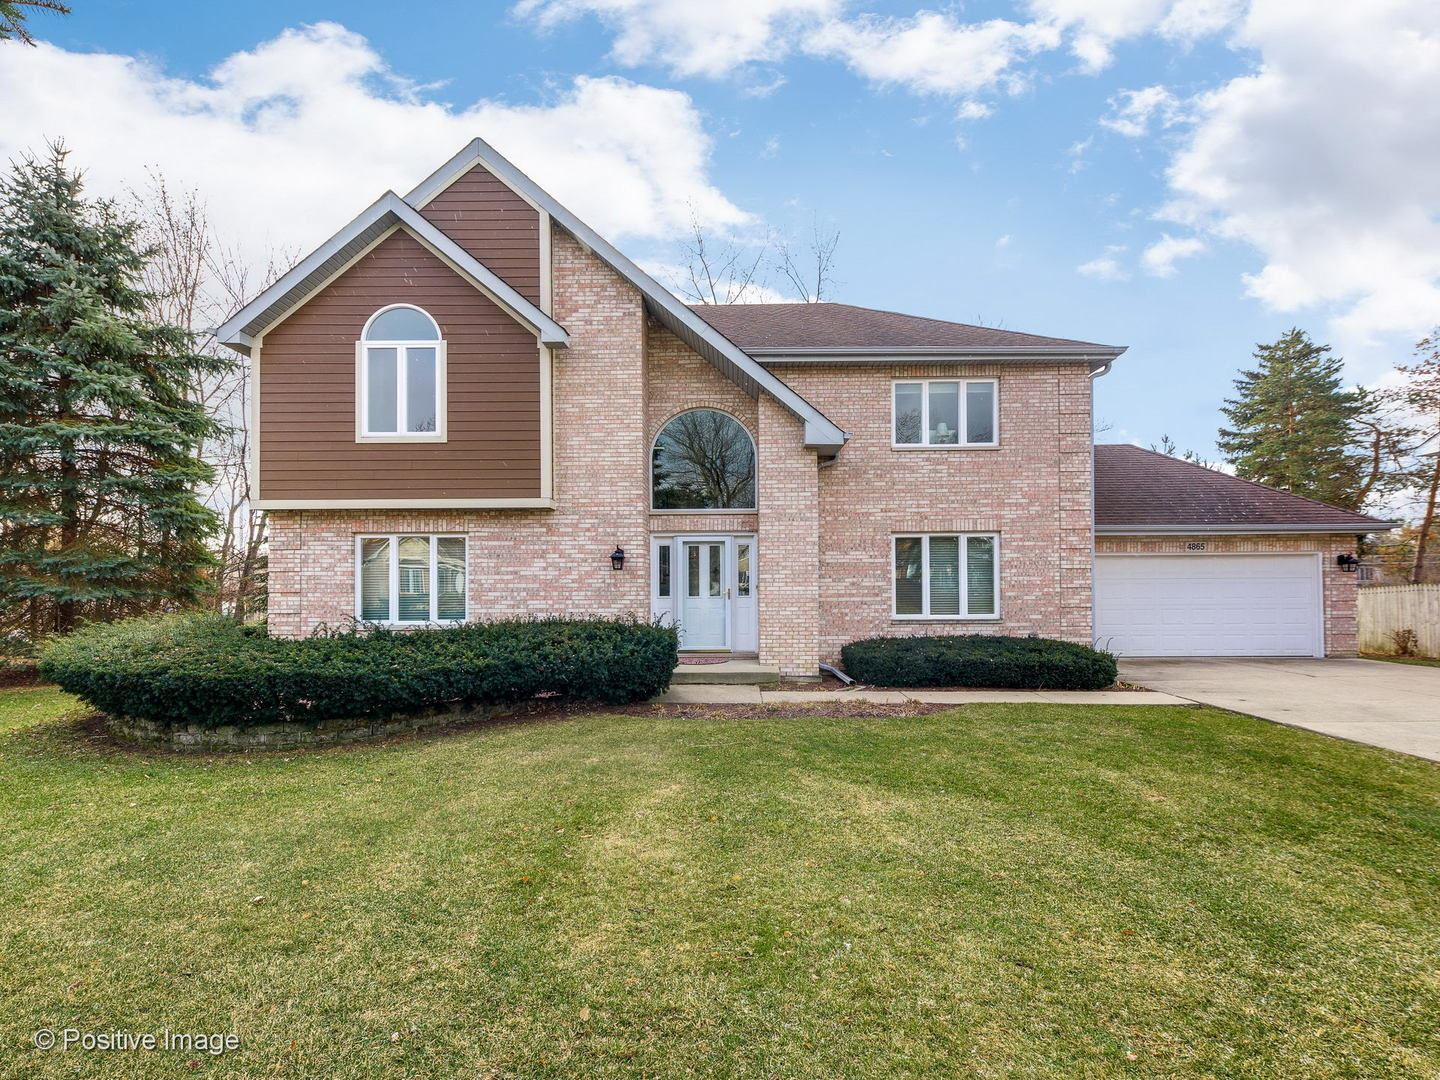 4865 Alexandra Court, Rolling Meadows, IL 60008 - #: 10729981